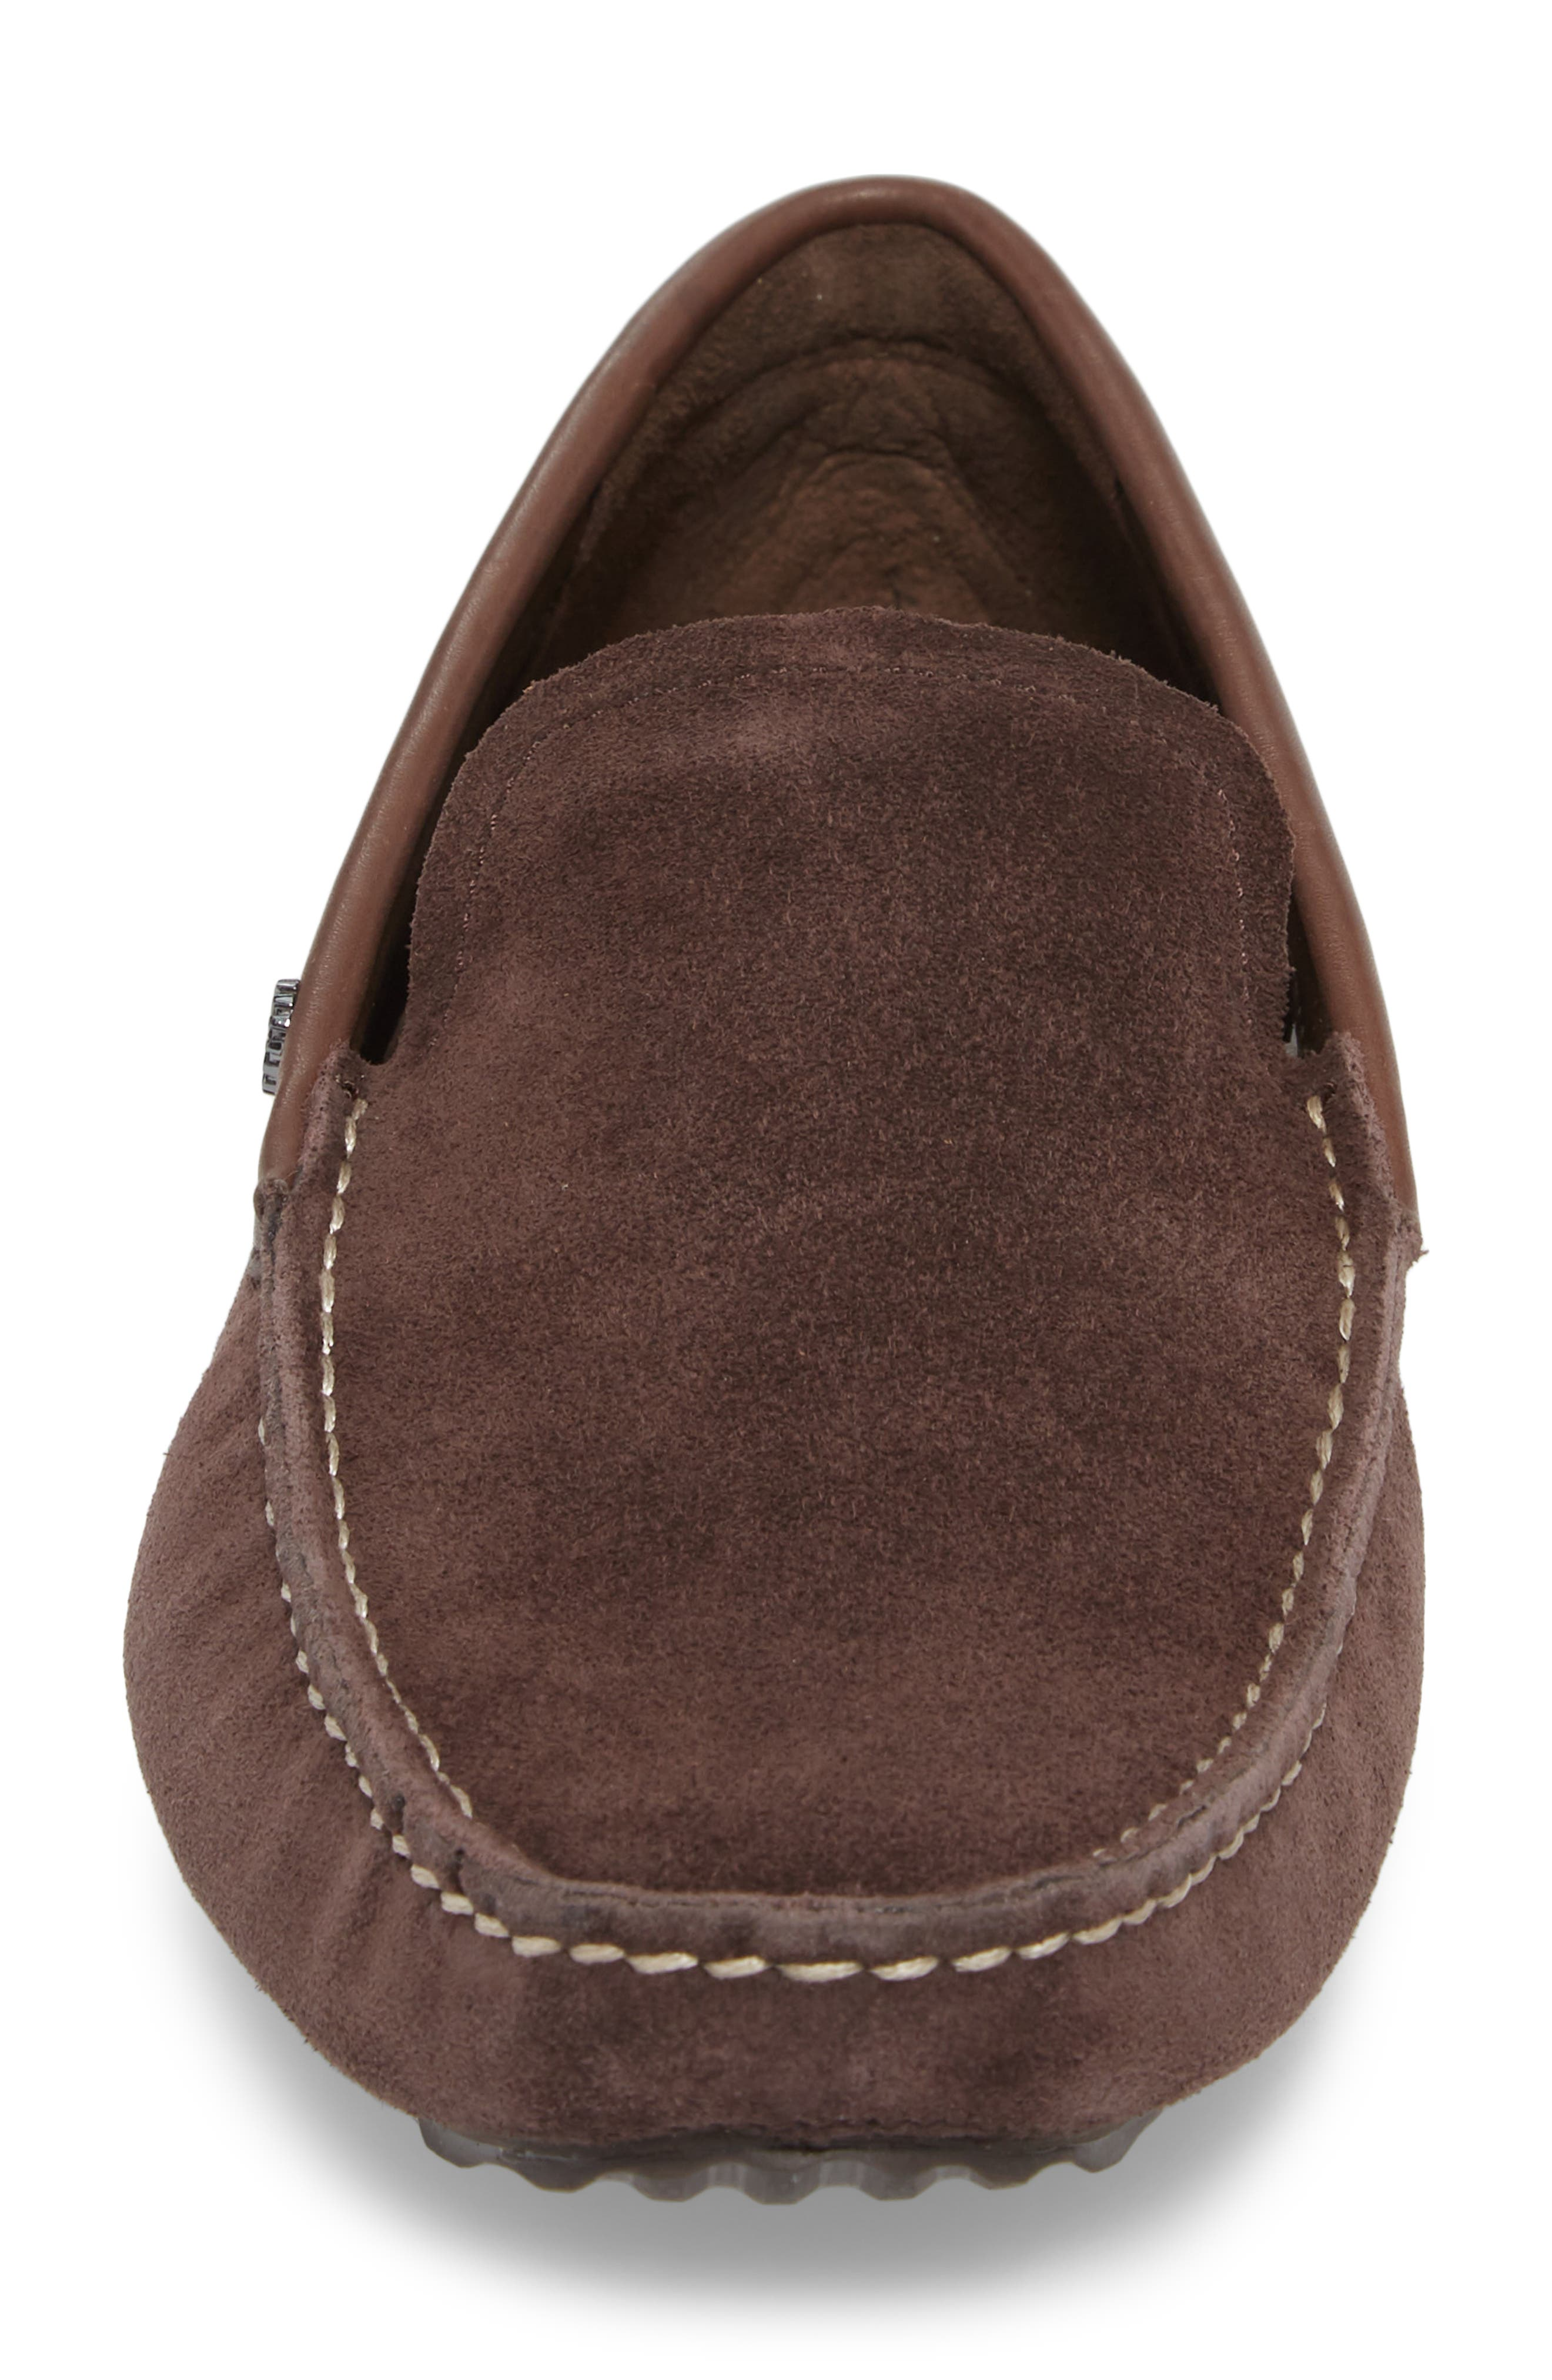 Bel-Air Driving Moccasin,                             Alternate thumbnail 4, color,                             Stout Leather